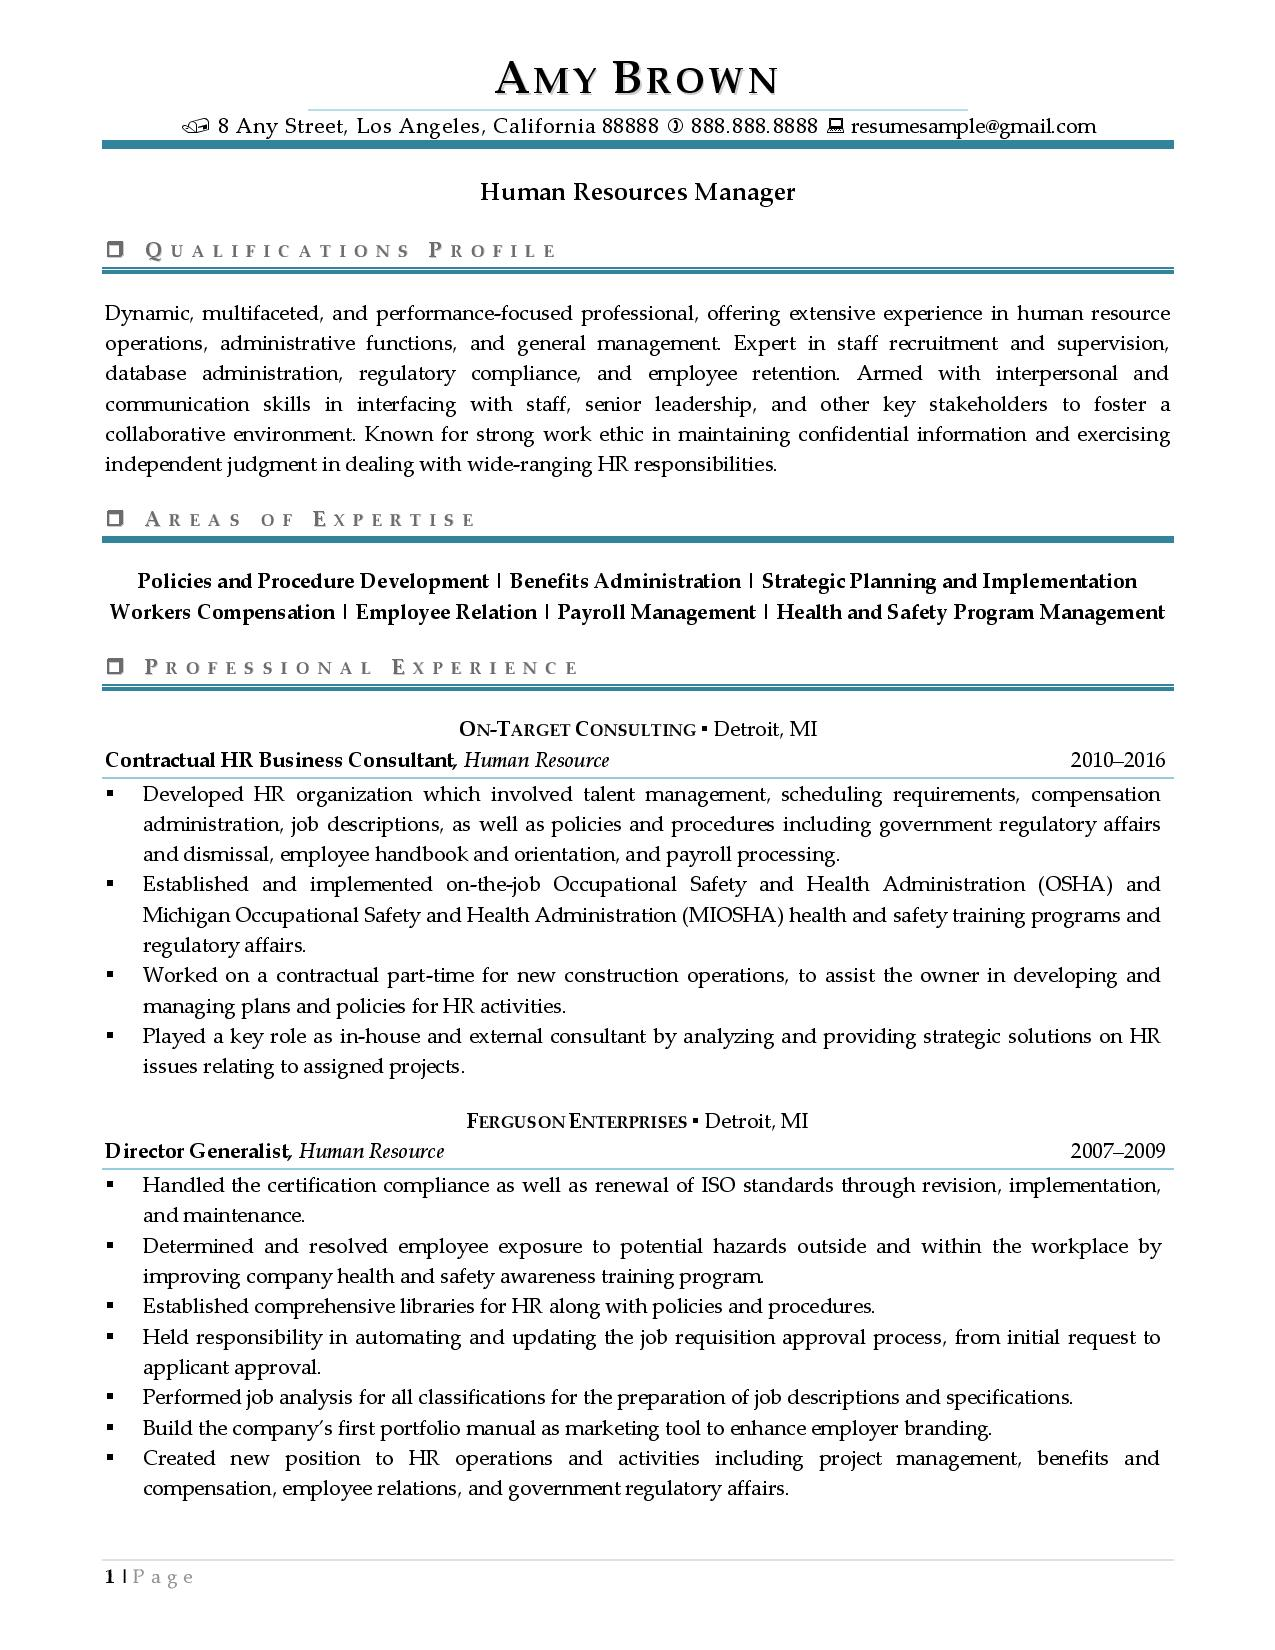 Optimized Human Resources Manager Resume Examples page 1